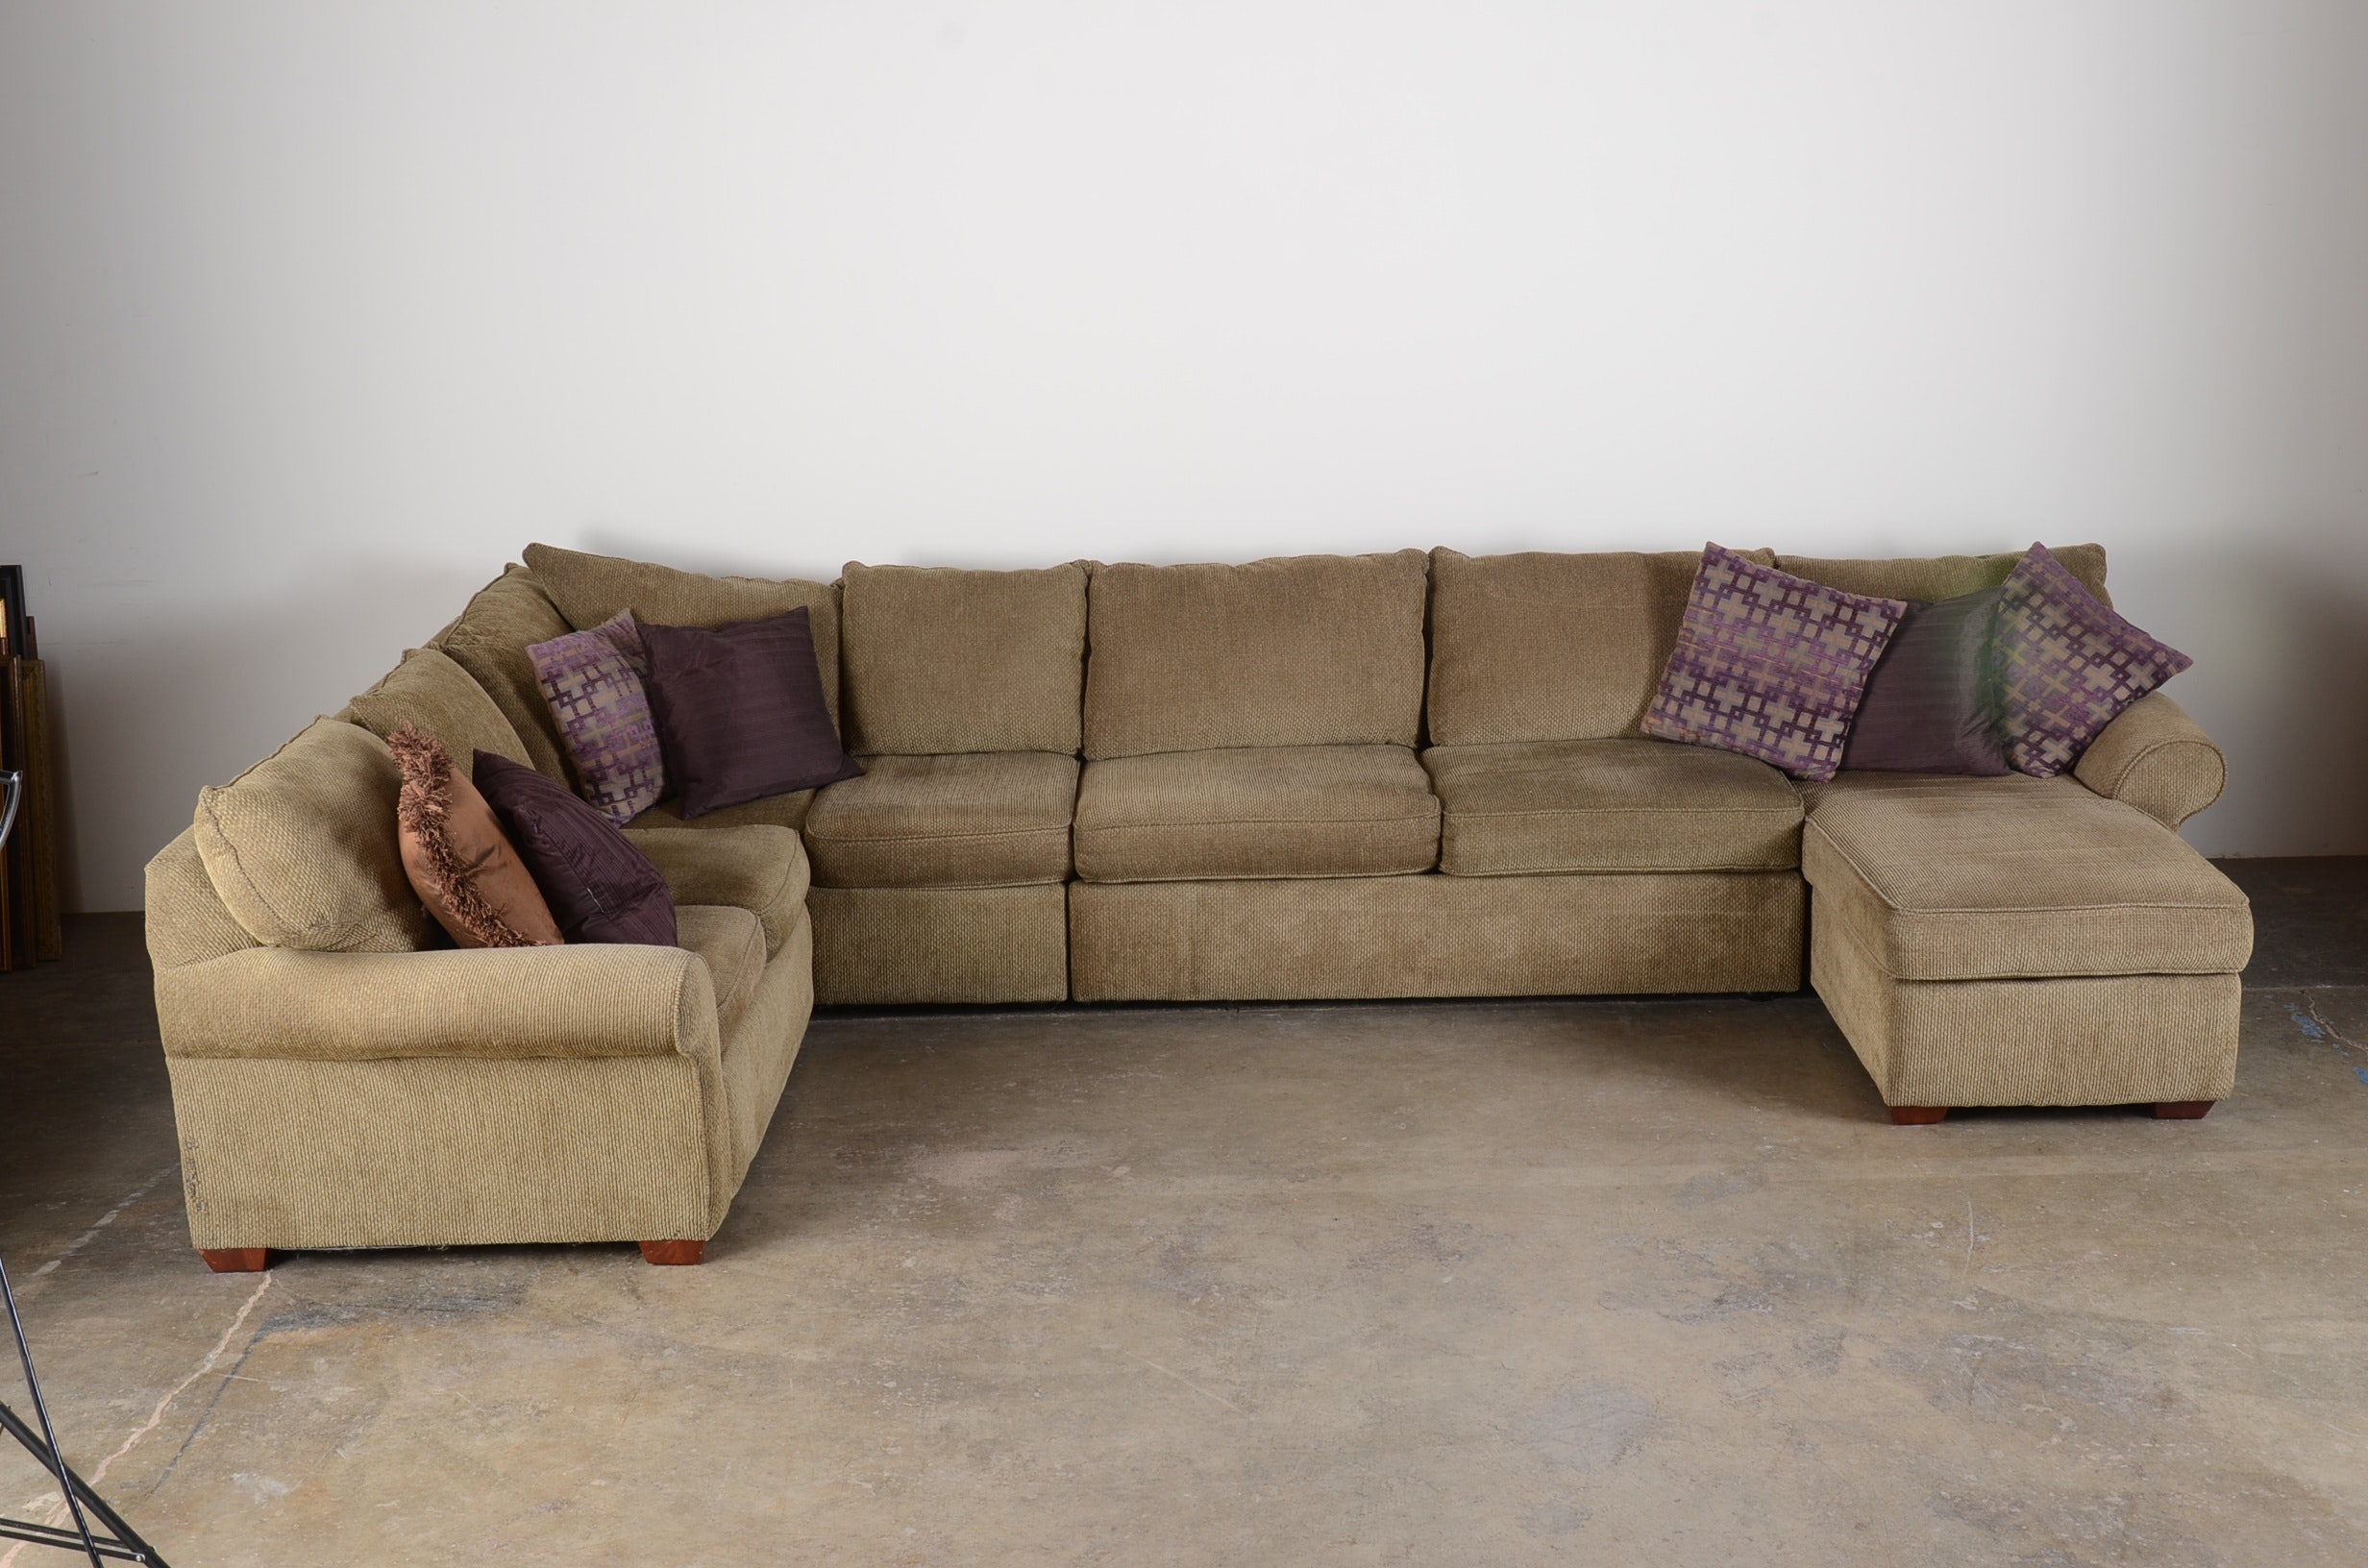 Sofa Express Sectional Couch ... : sofa express sectional - Sectionals, Sofas & Couches